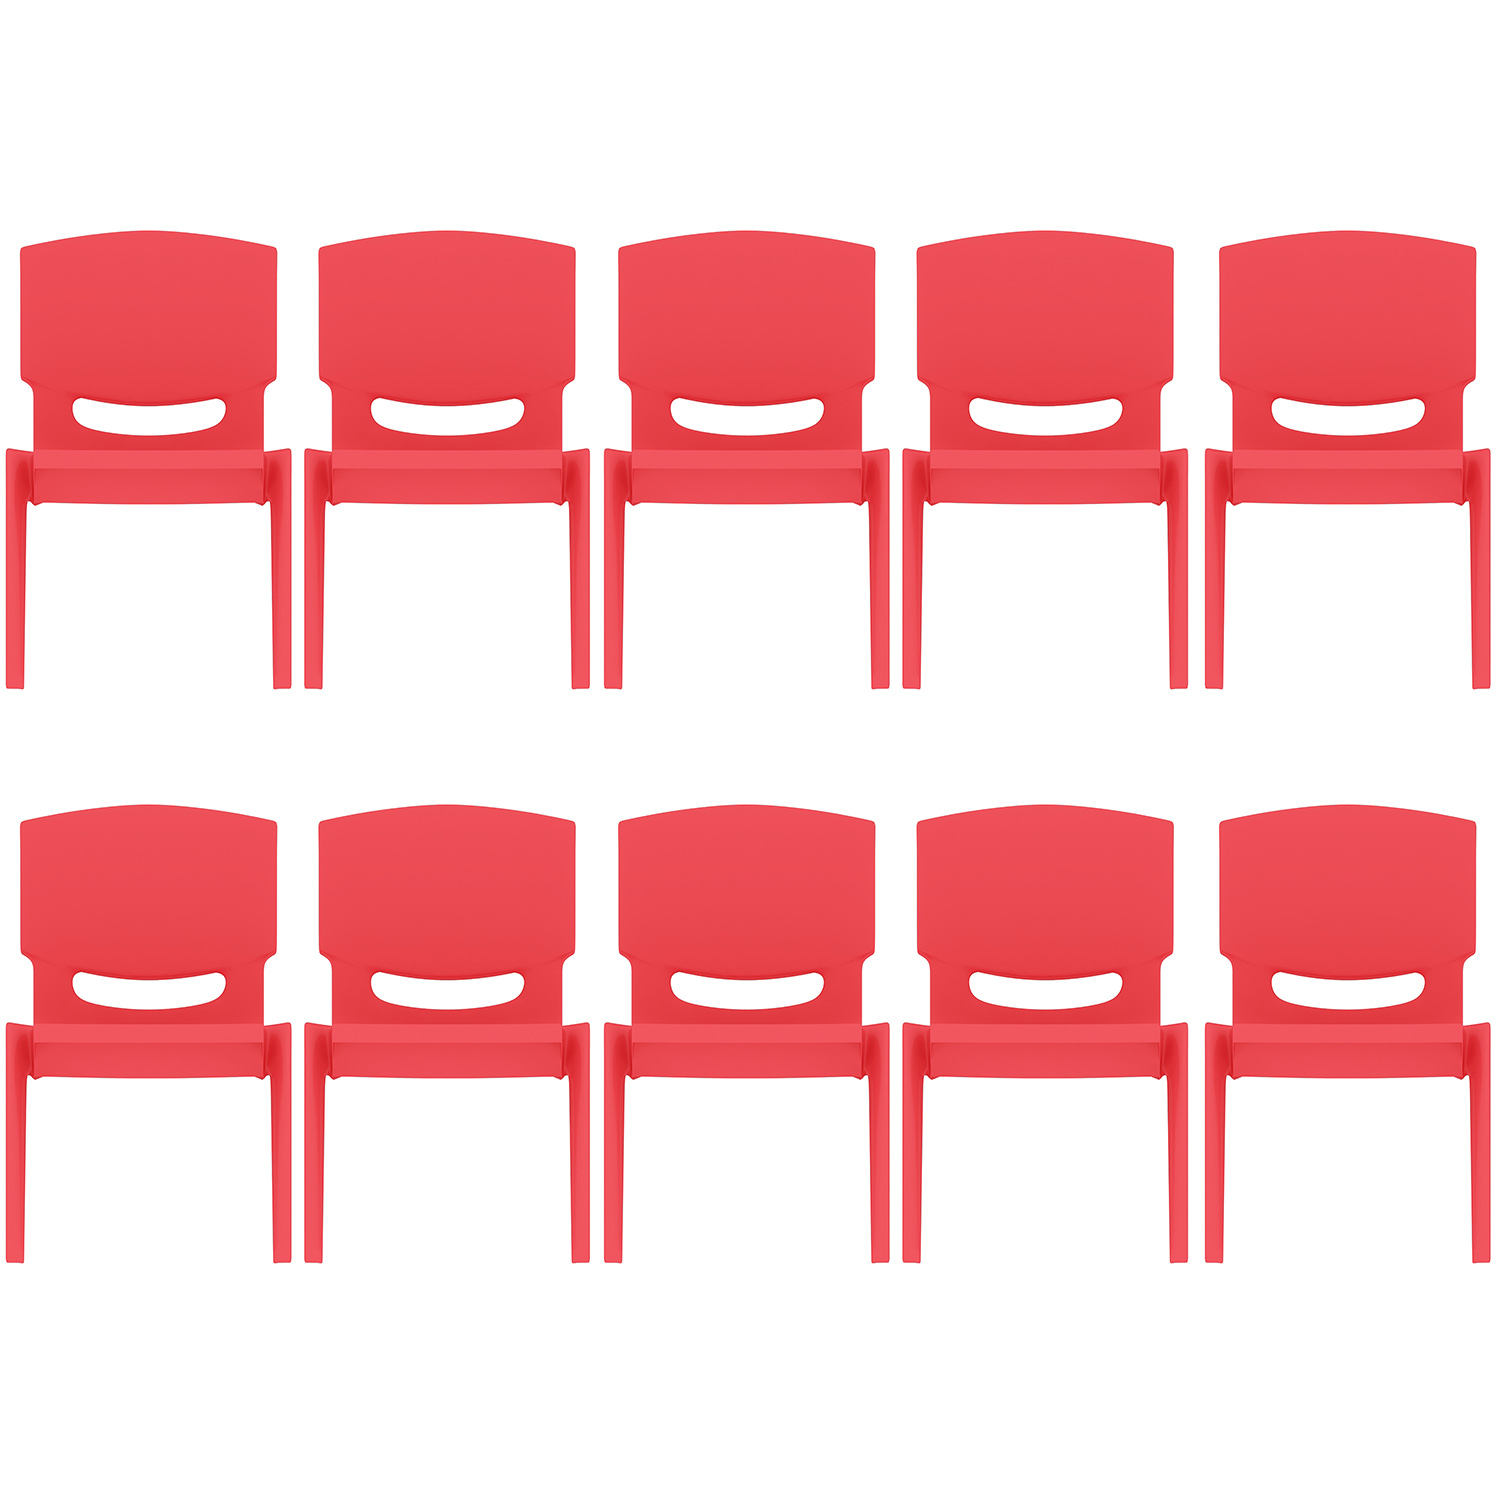 """2xhome - Set of 10 Red - Kids Size Plastic Side Chair 12"""" Seat Height Childs Chair Childrens Room School Chairs No Arm Arms Armless Molded Plastic Seat Stackable"""